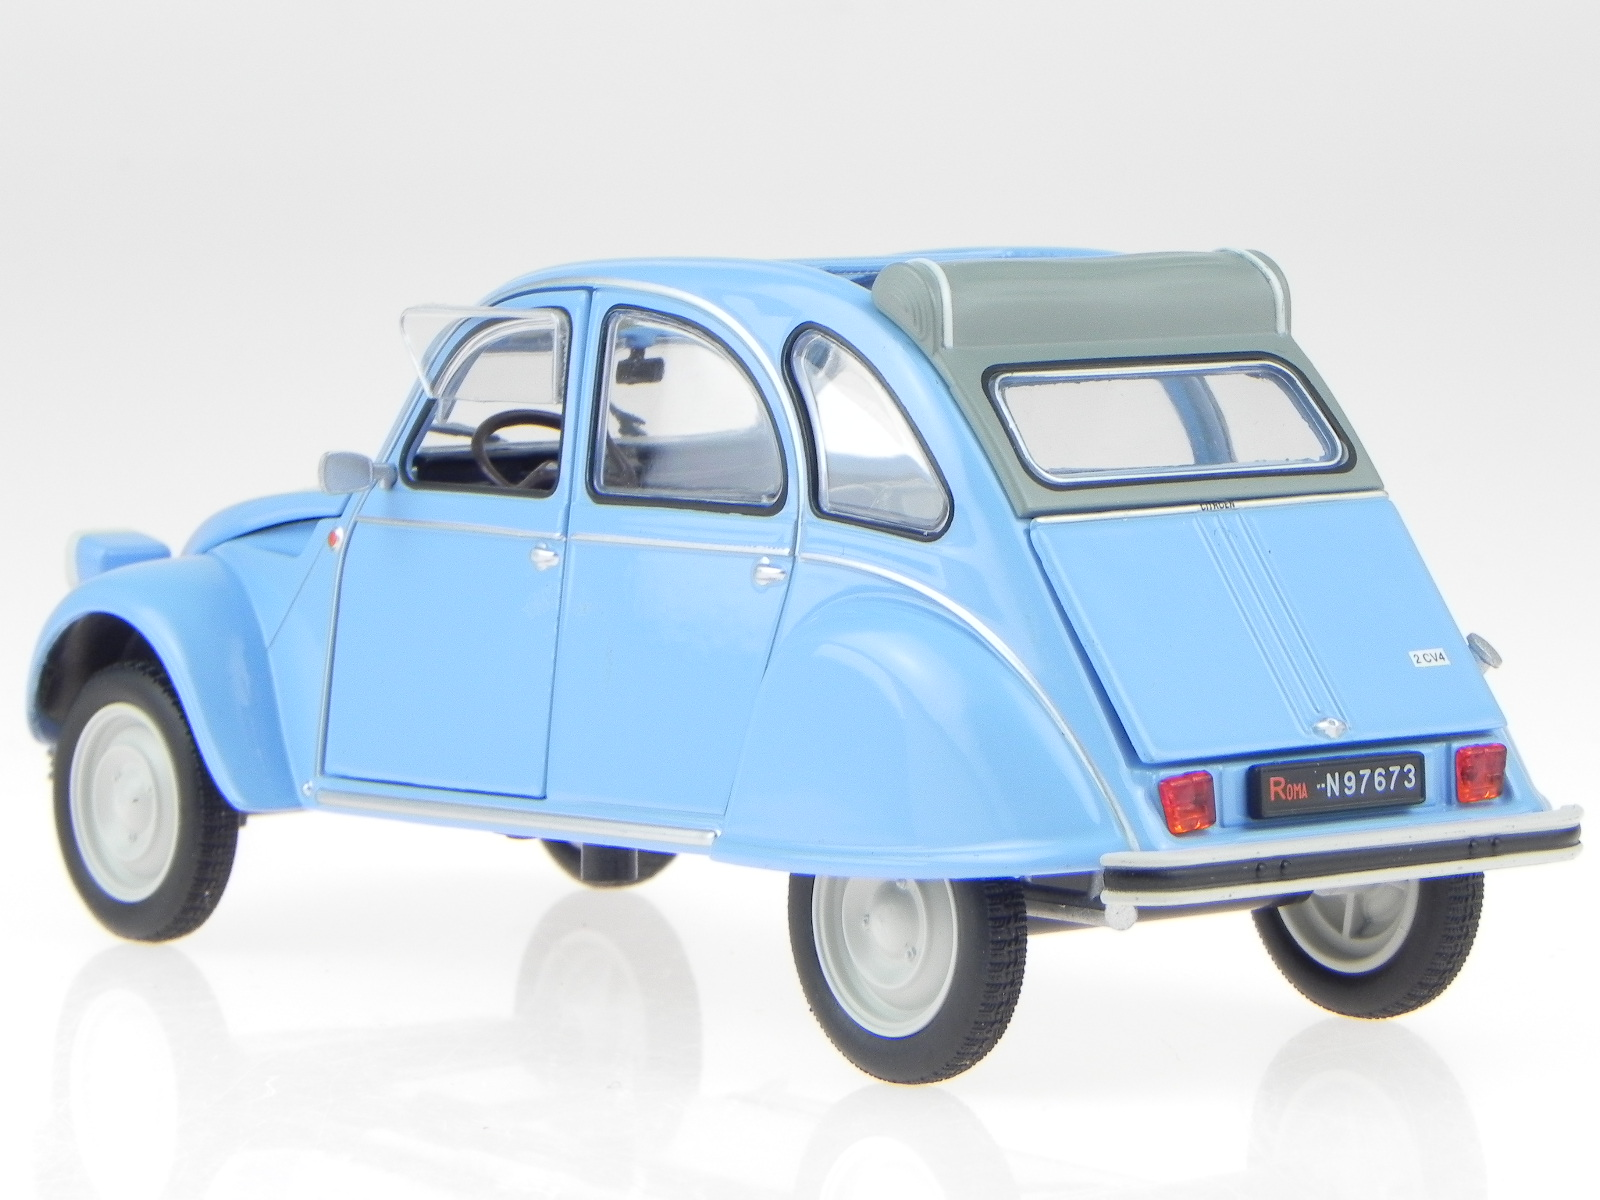 citroen 2cv 2 cv 4 ente 1976 blue modelcar leo 1 24. Black Bedroom Furniture Sets. Home Design Ideas